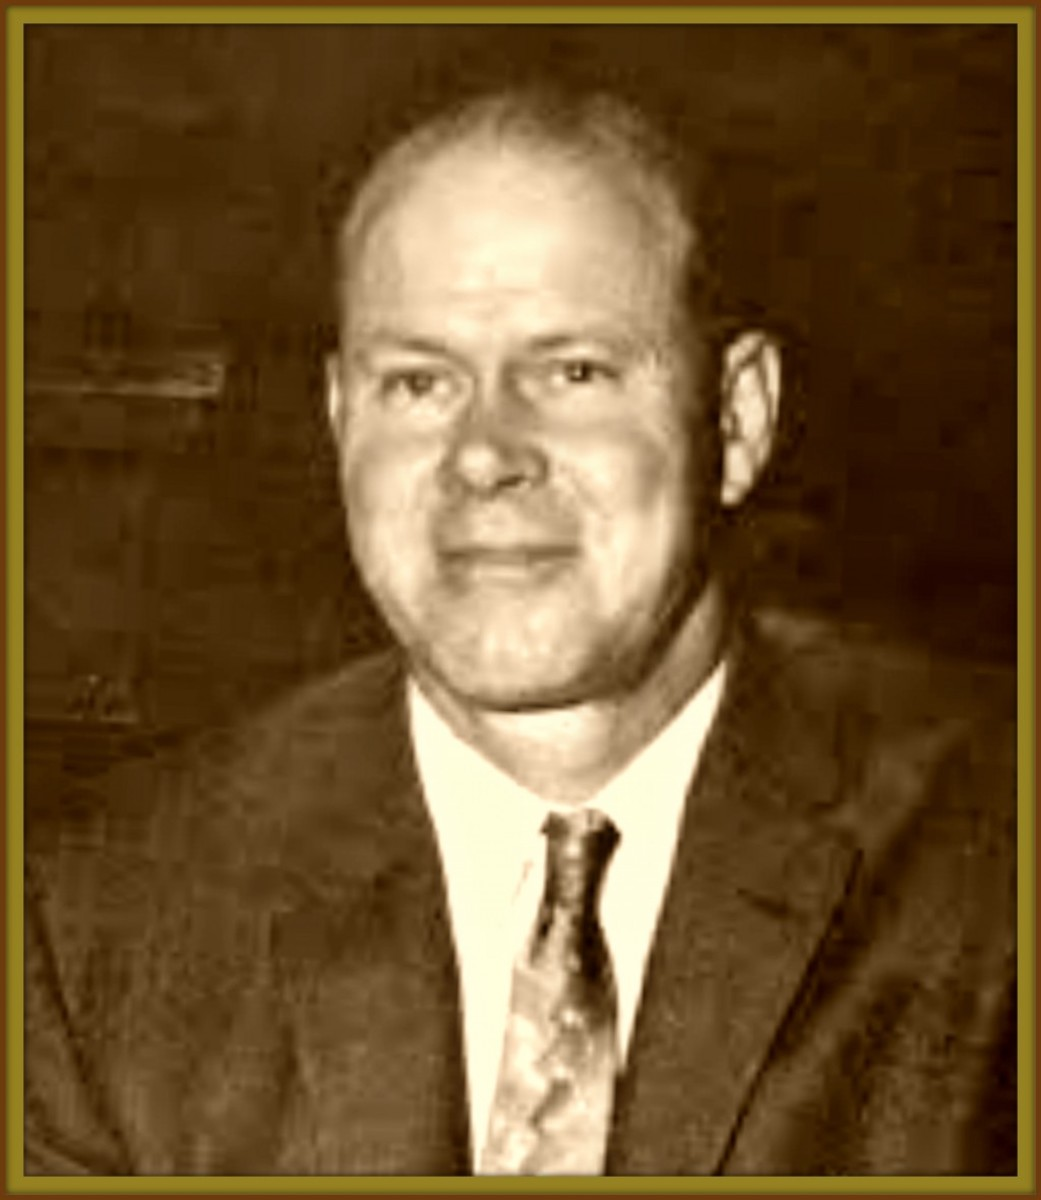 George Van Tassel was born in Jefferson Ohio in the year 1910. He was a space age designer, author of UFOs, inventor amazing machines, a great lecturer, fascination radio and television personality and maverick airport operator.